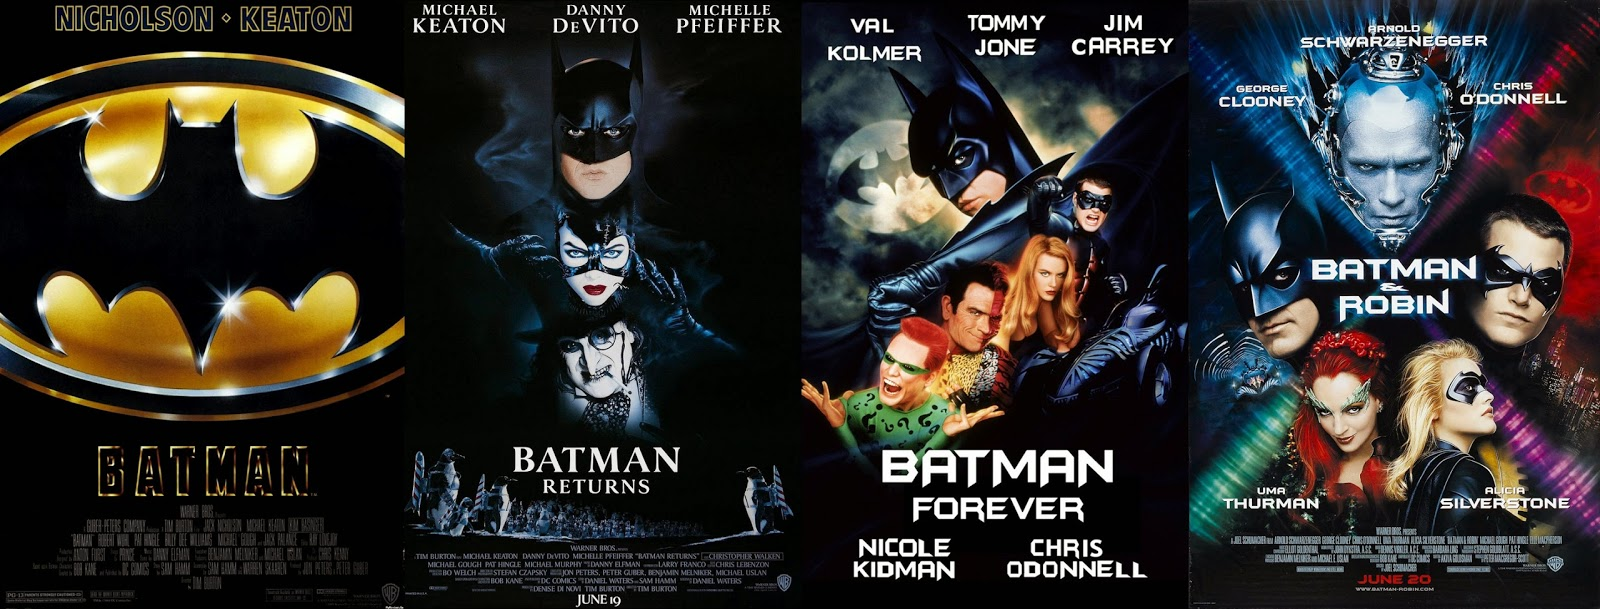 the originality and art of tim burton in batman a 1989 movie And batman is the movie, the all-out spectacular directed by tim burton, set to songs by prince and a music score by danny elfman, and an academy awardo winner for best art direction/set the creative vision of the dark knight is presented in only a way tim burton could do it batman is a.